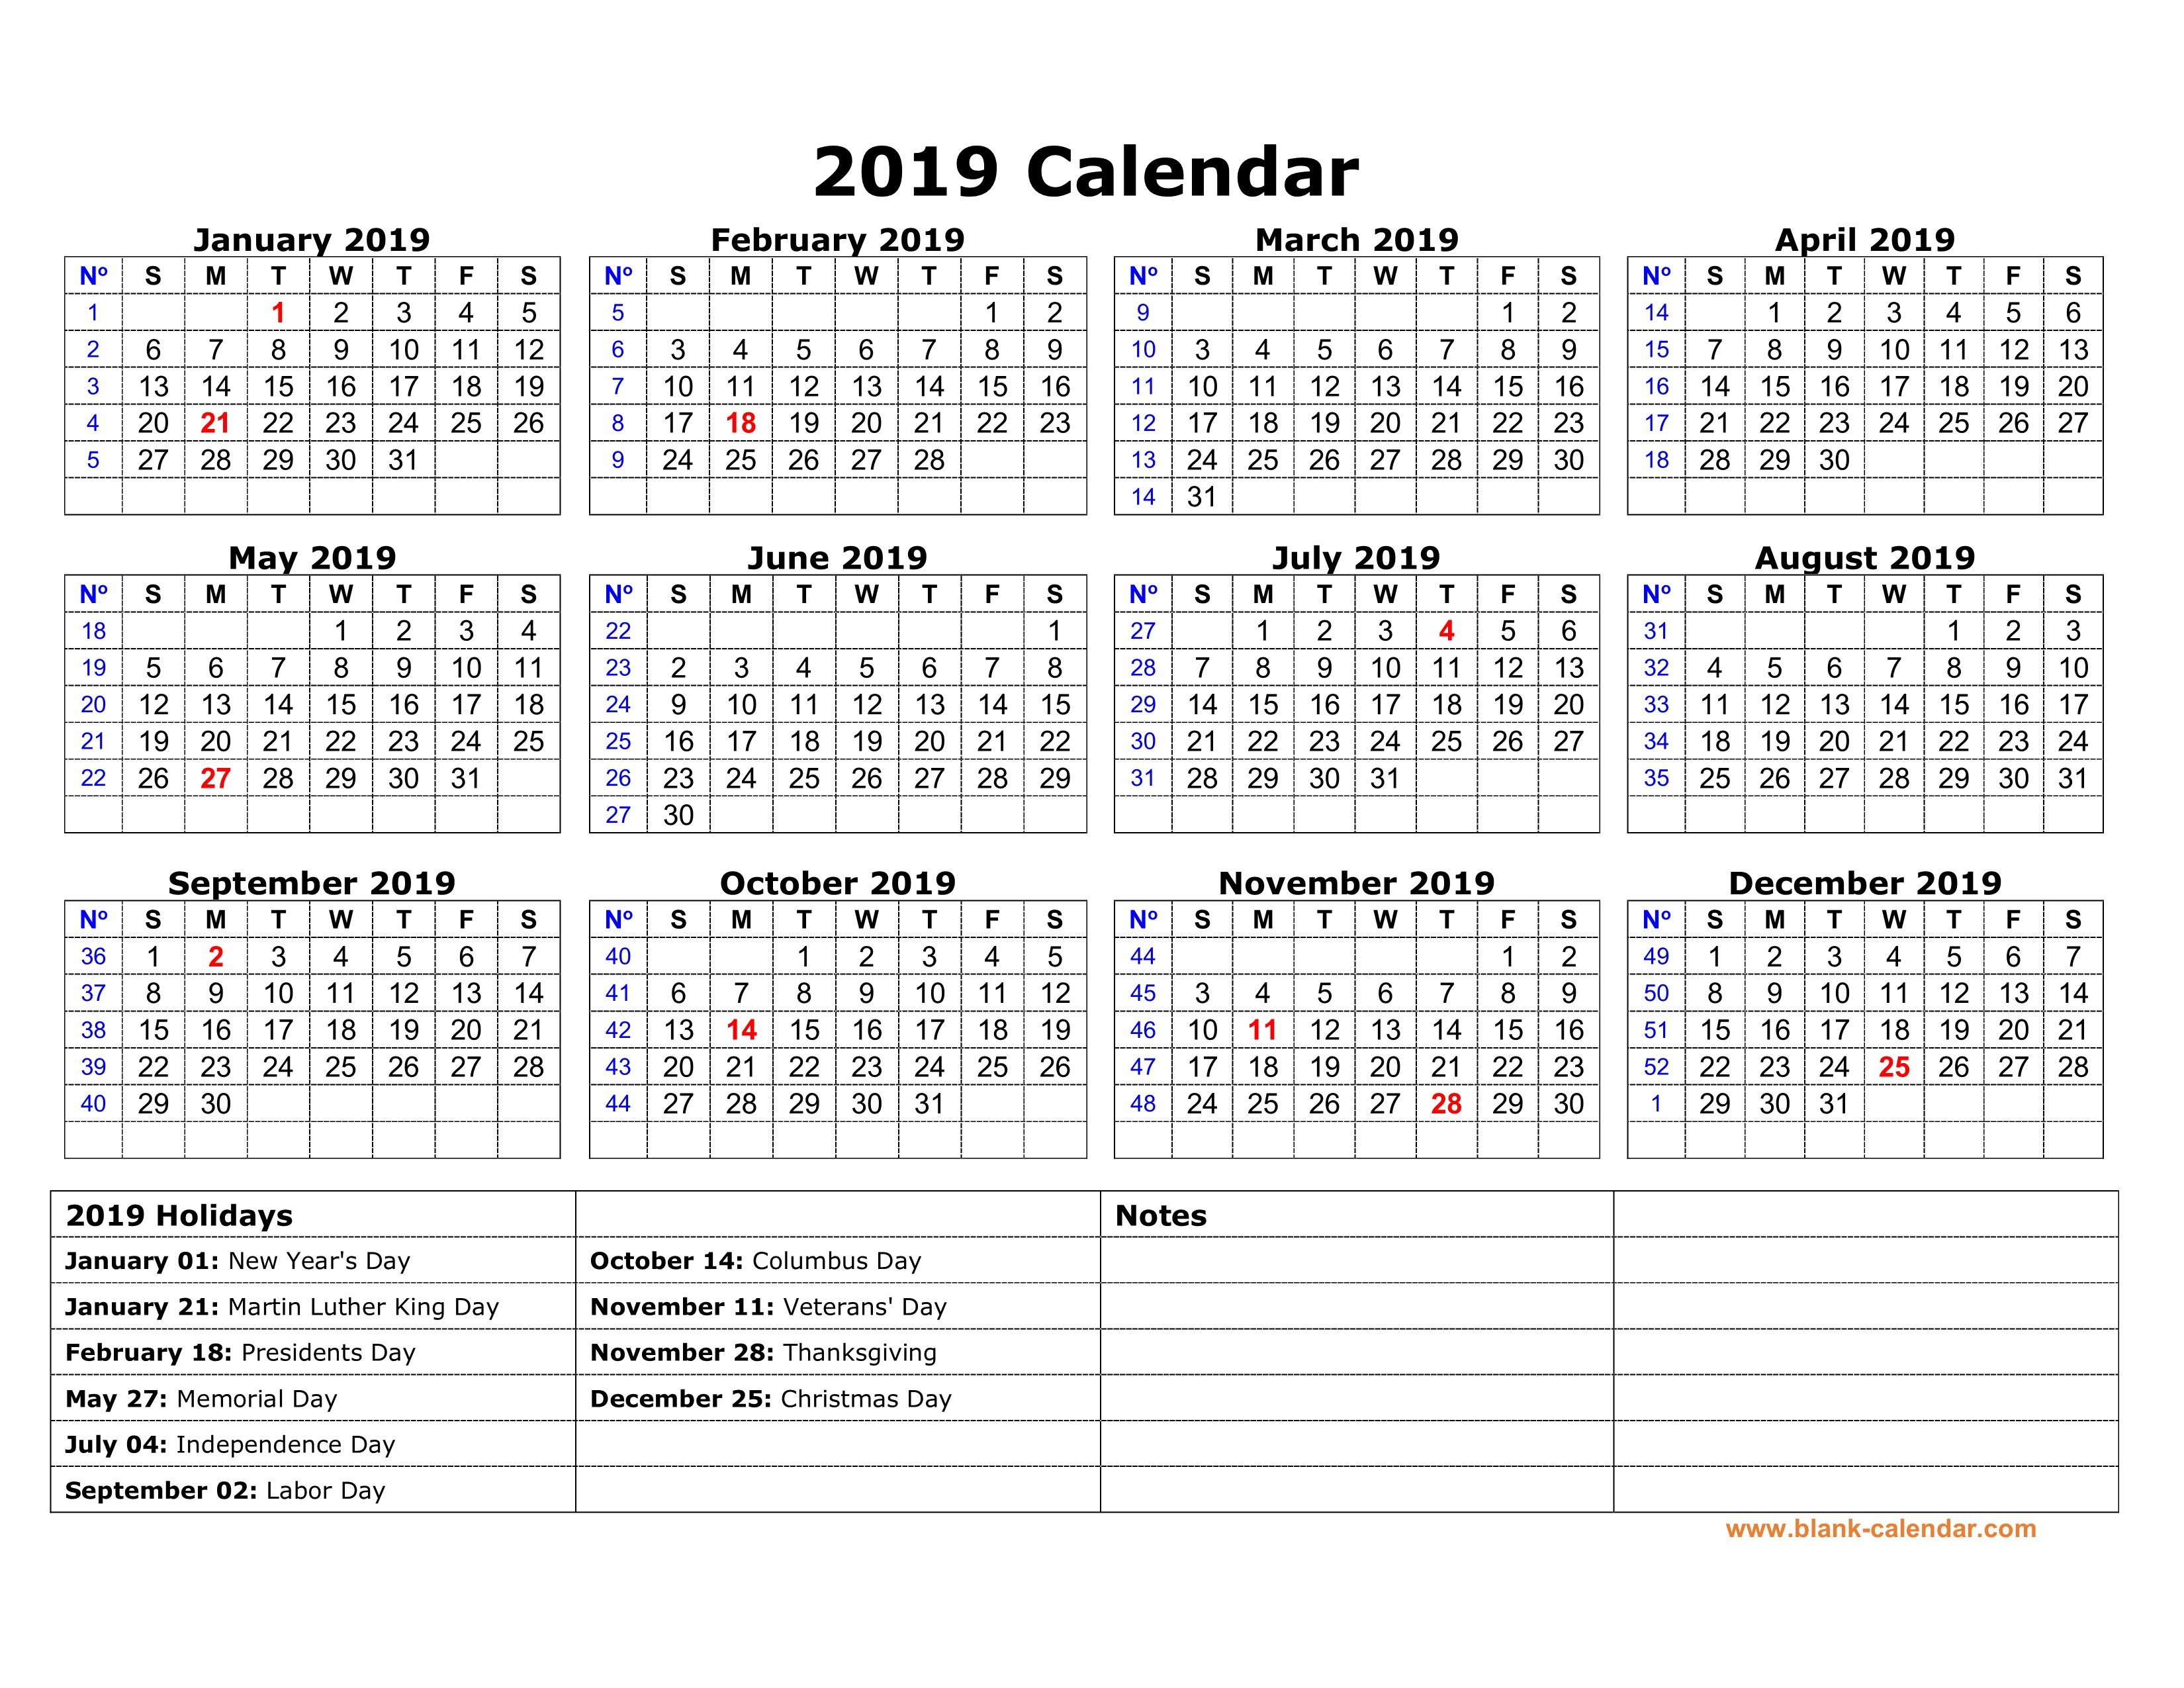 Free Download Printable Calendar 2019 With Us Federal Holidays, One Calendar Of 2019 With Holidays